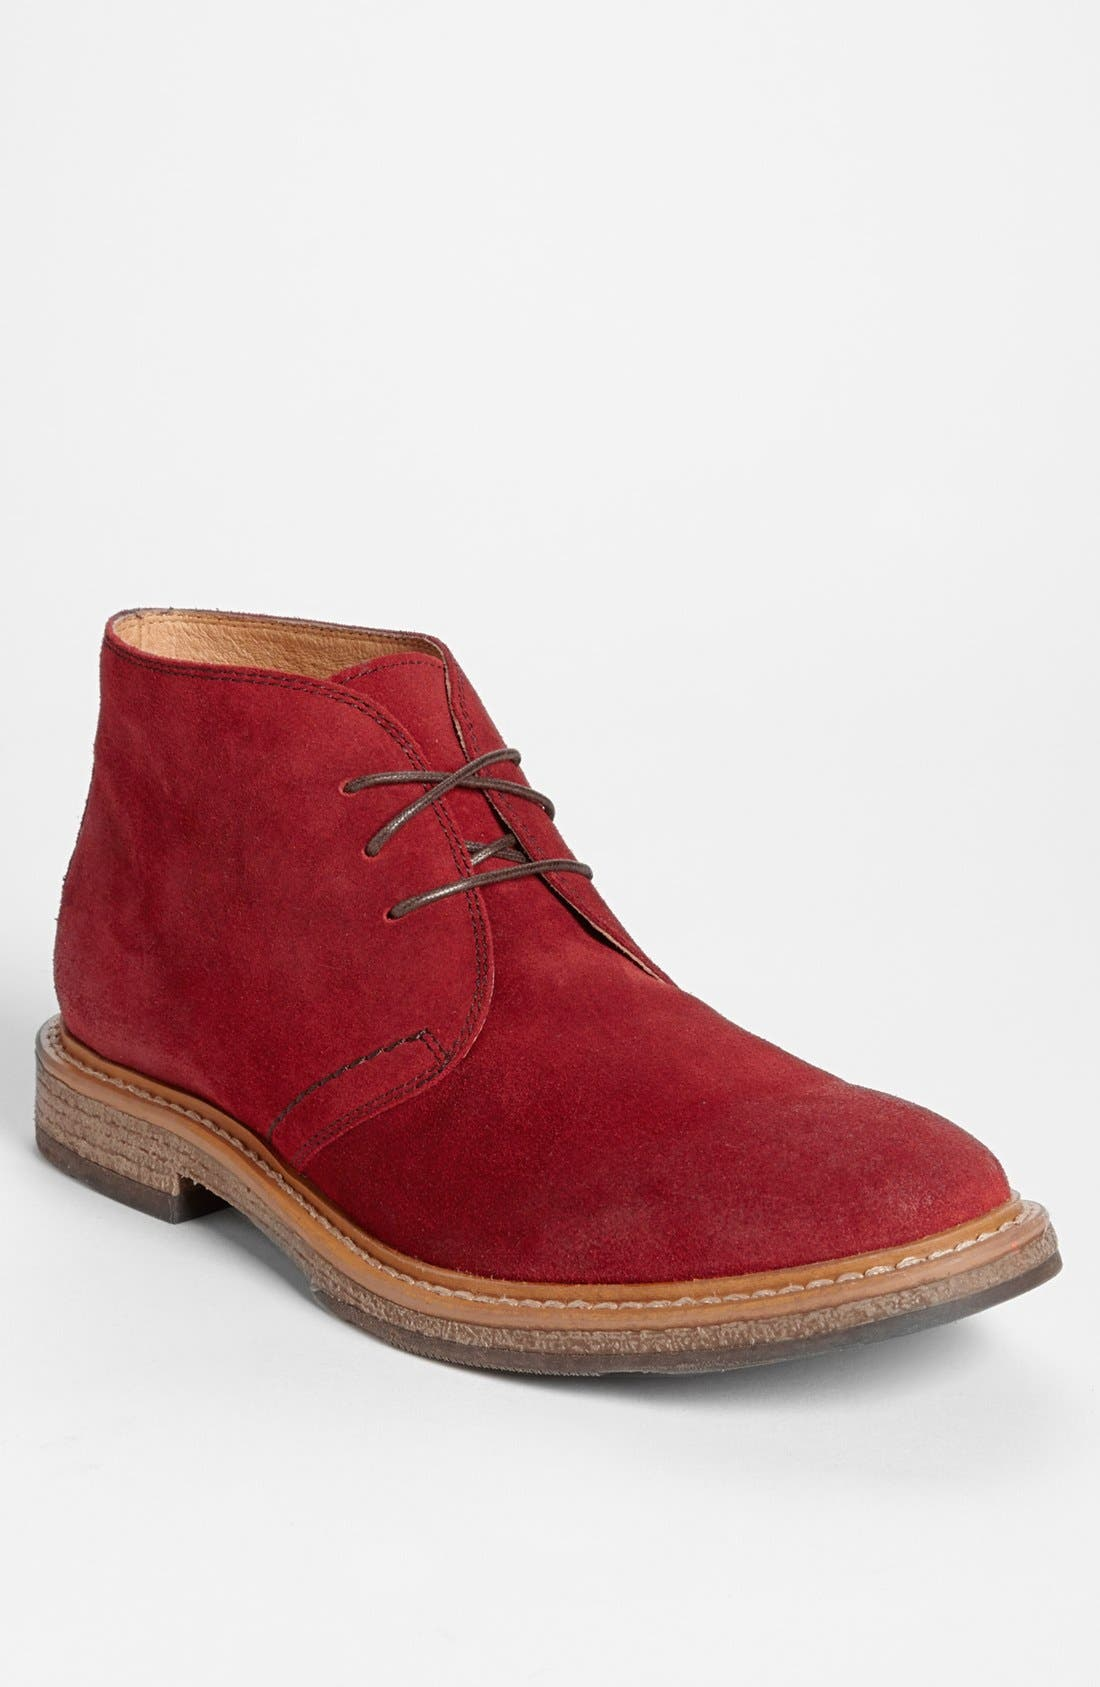 'Canyon' Chukka Boot,                             Main thumbnail 1, color,                             Red